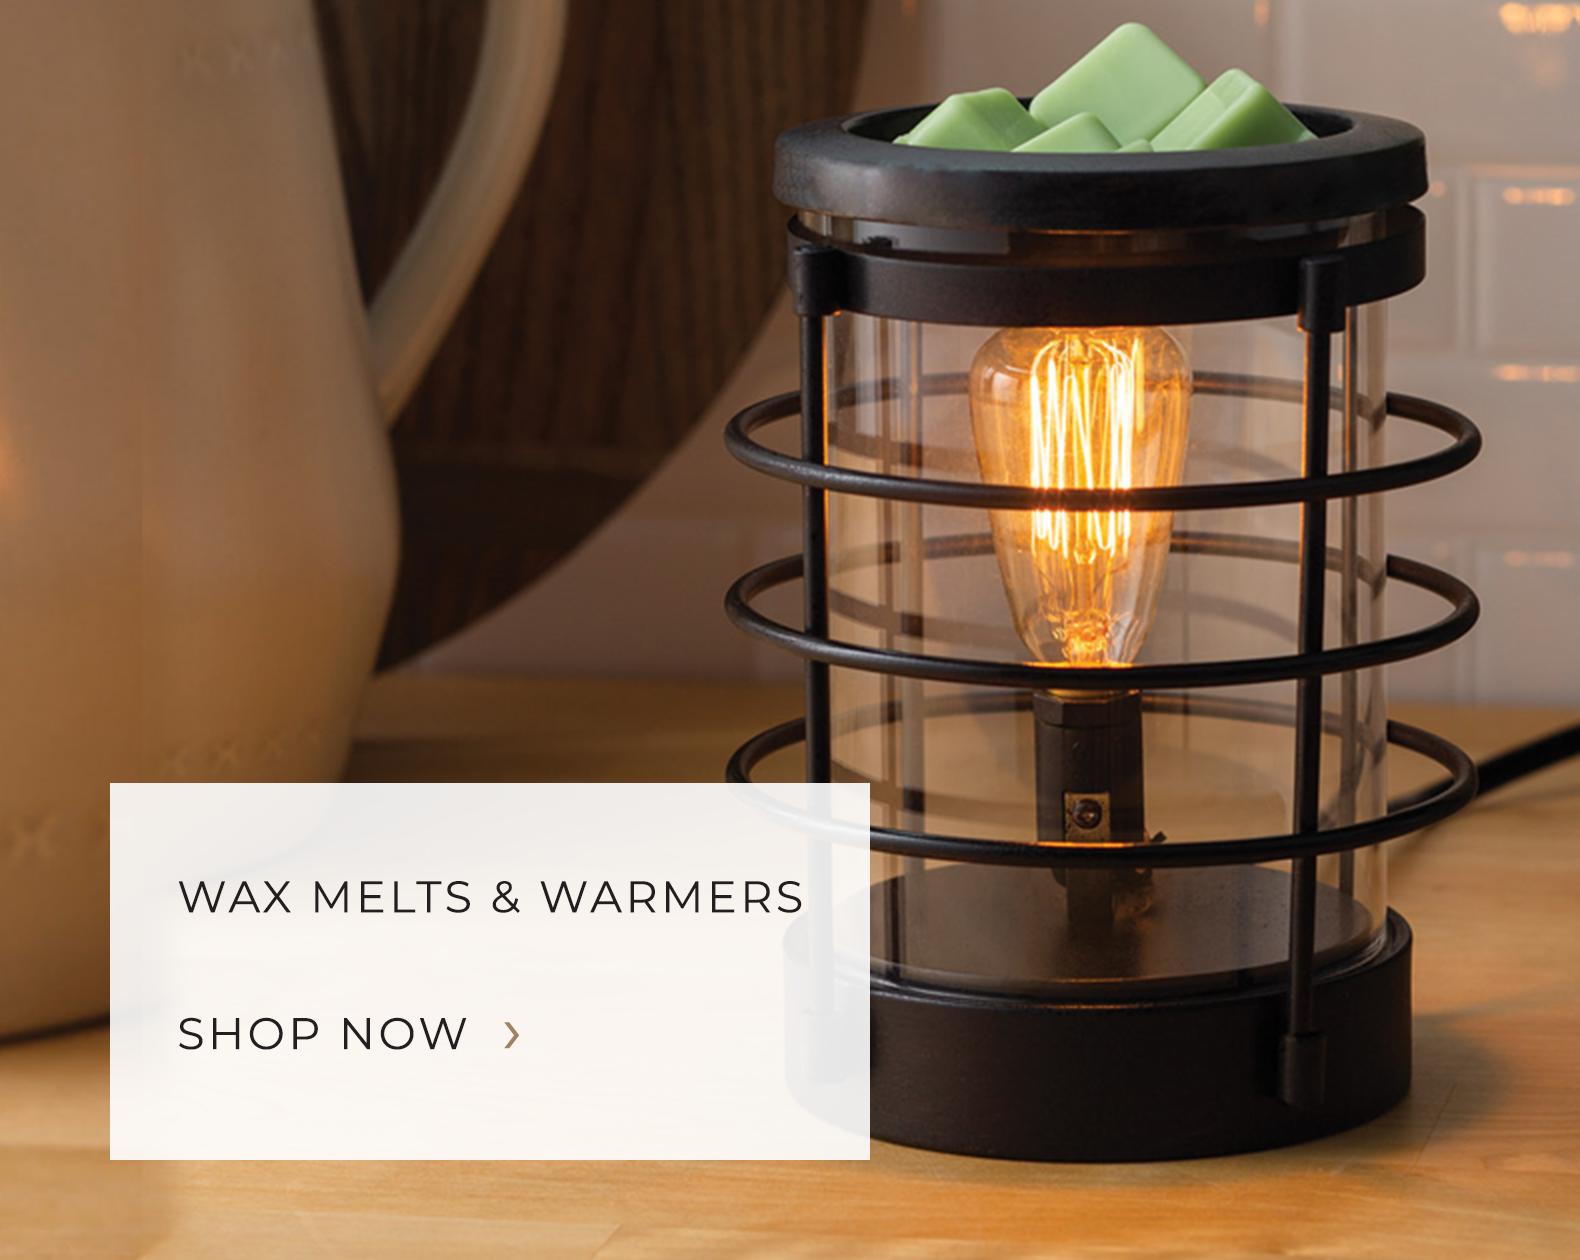 wax melts and warmers